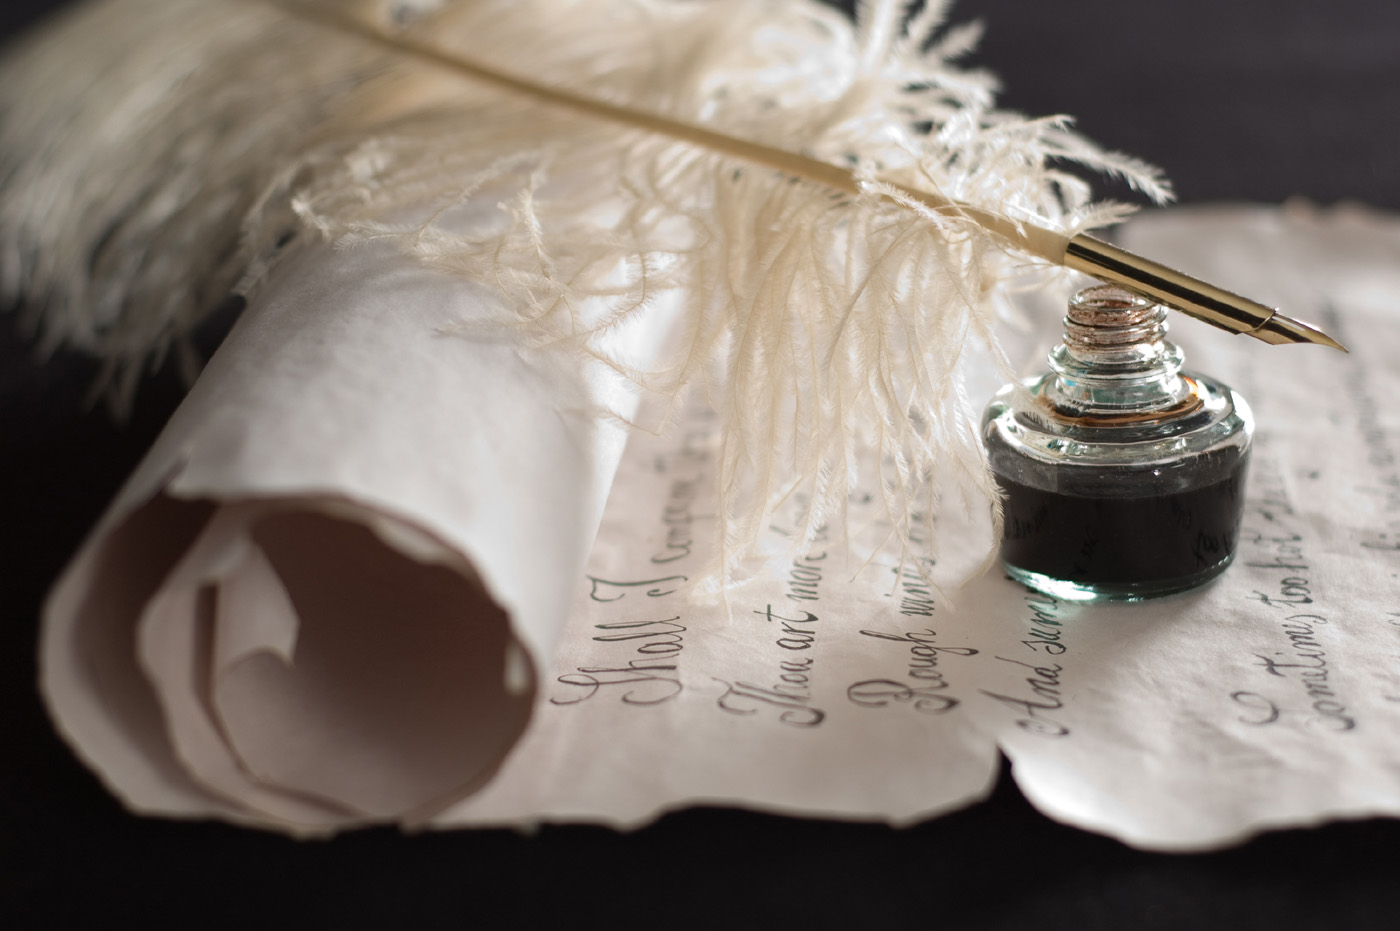 Feather pen and scrolls 6284